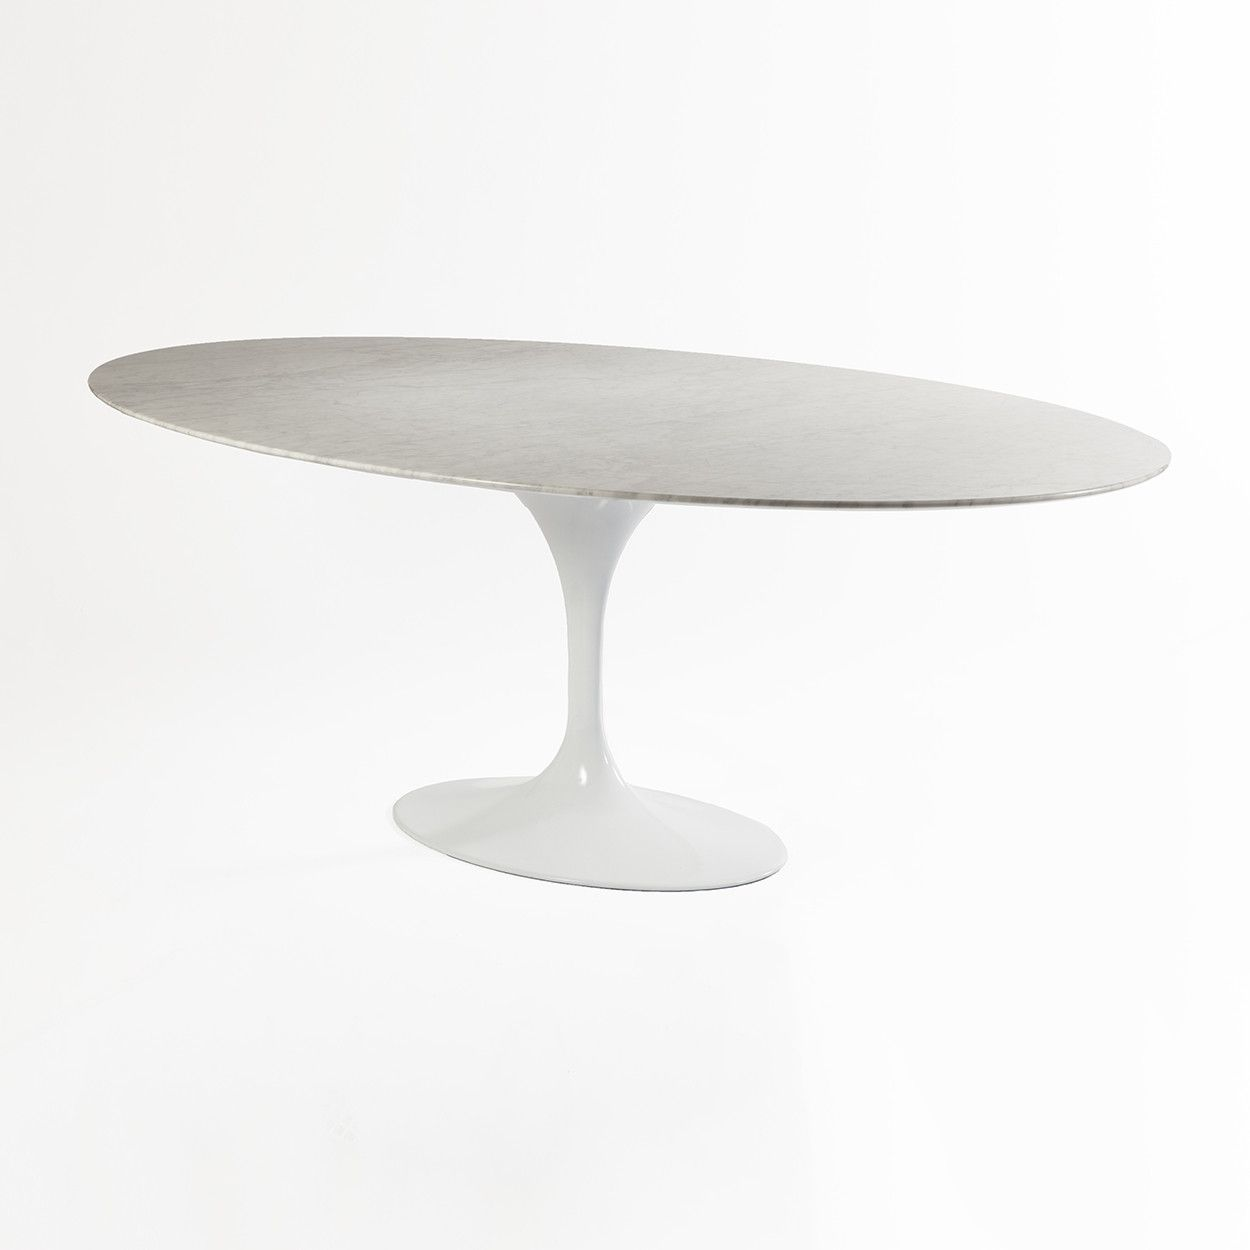 Carrara Marble Tulip Dining Table 79 Oval Dining Table Marble Tulip Dining Table Dining Table